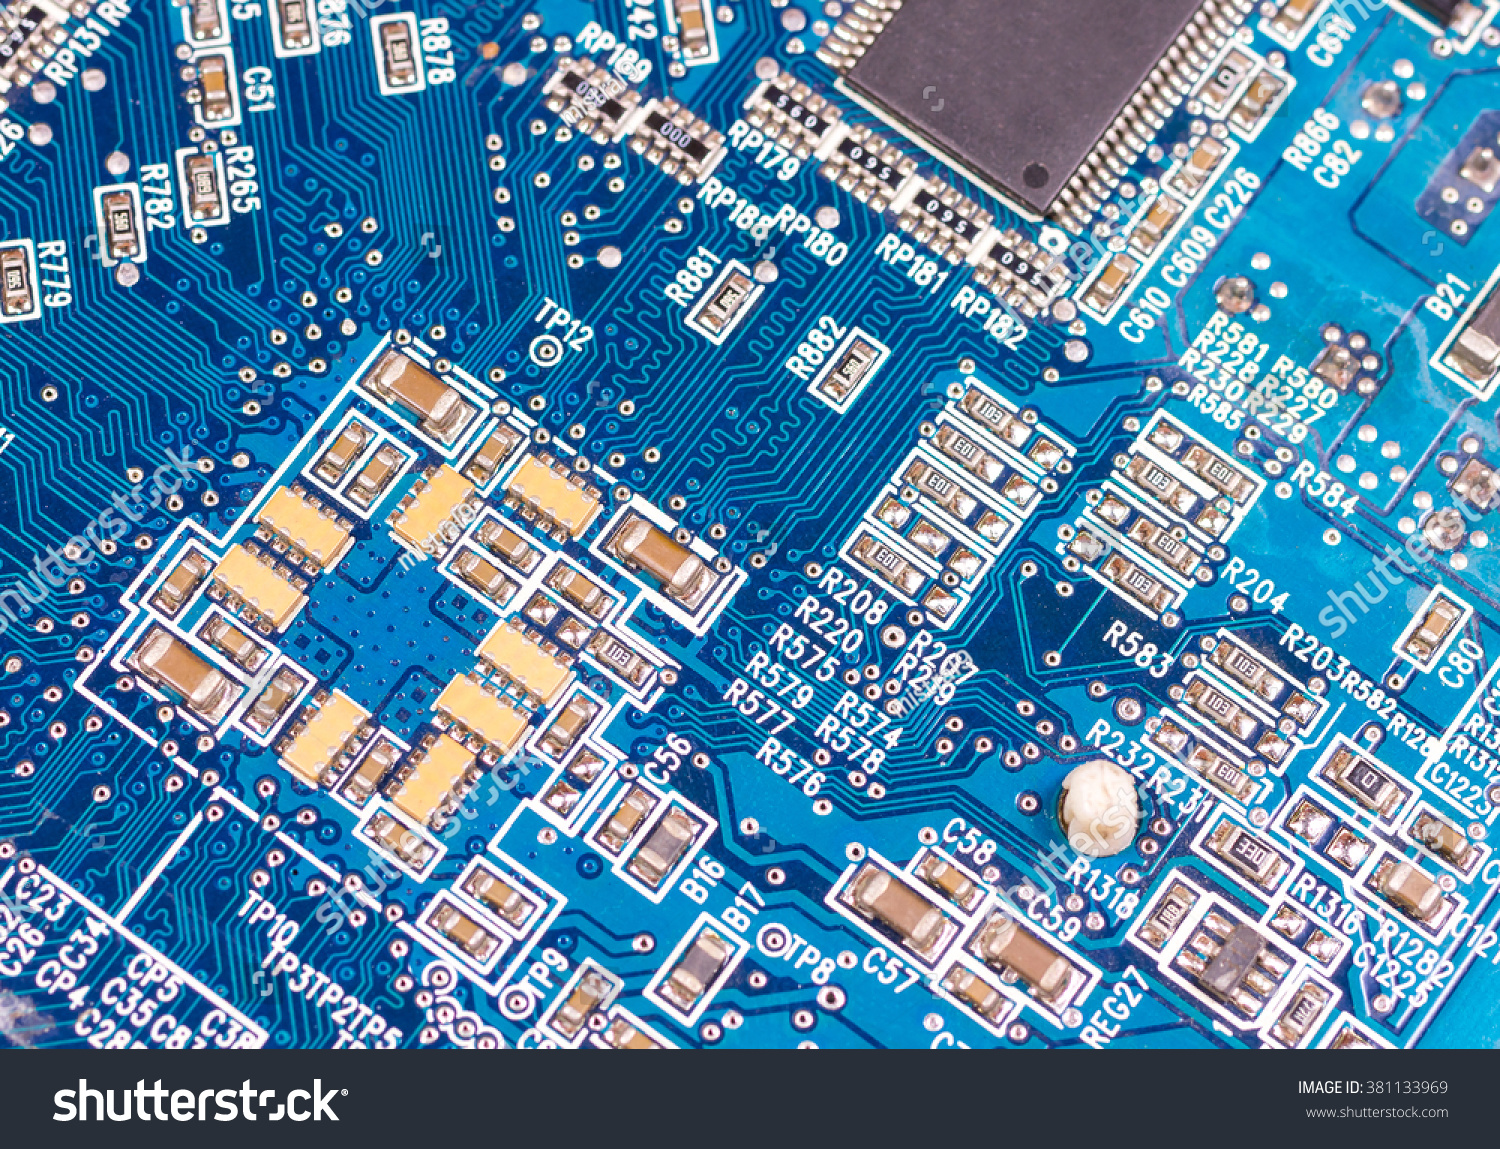 Big Electronic Circuit Board Radio Components Stock Photo Edit Now With Soldered On A Blue Pcb